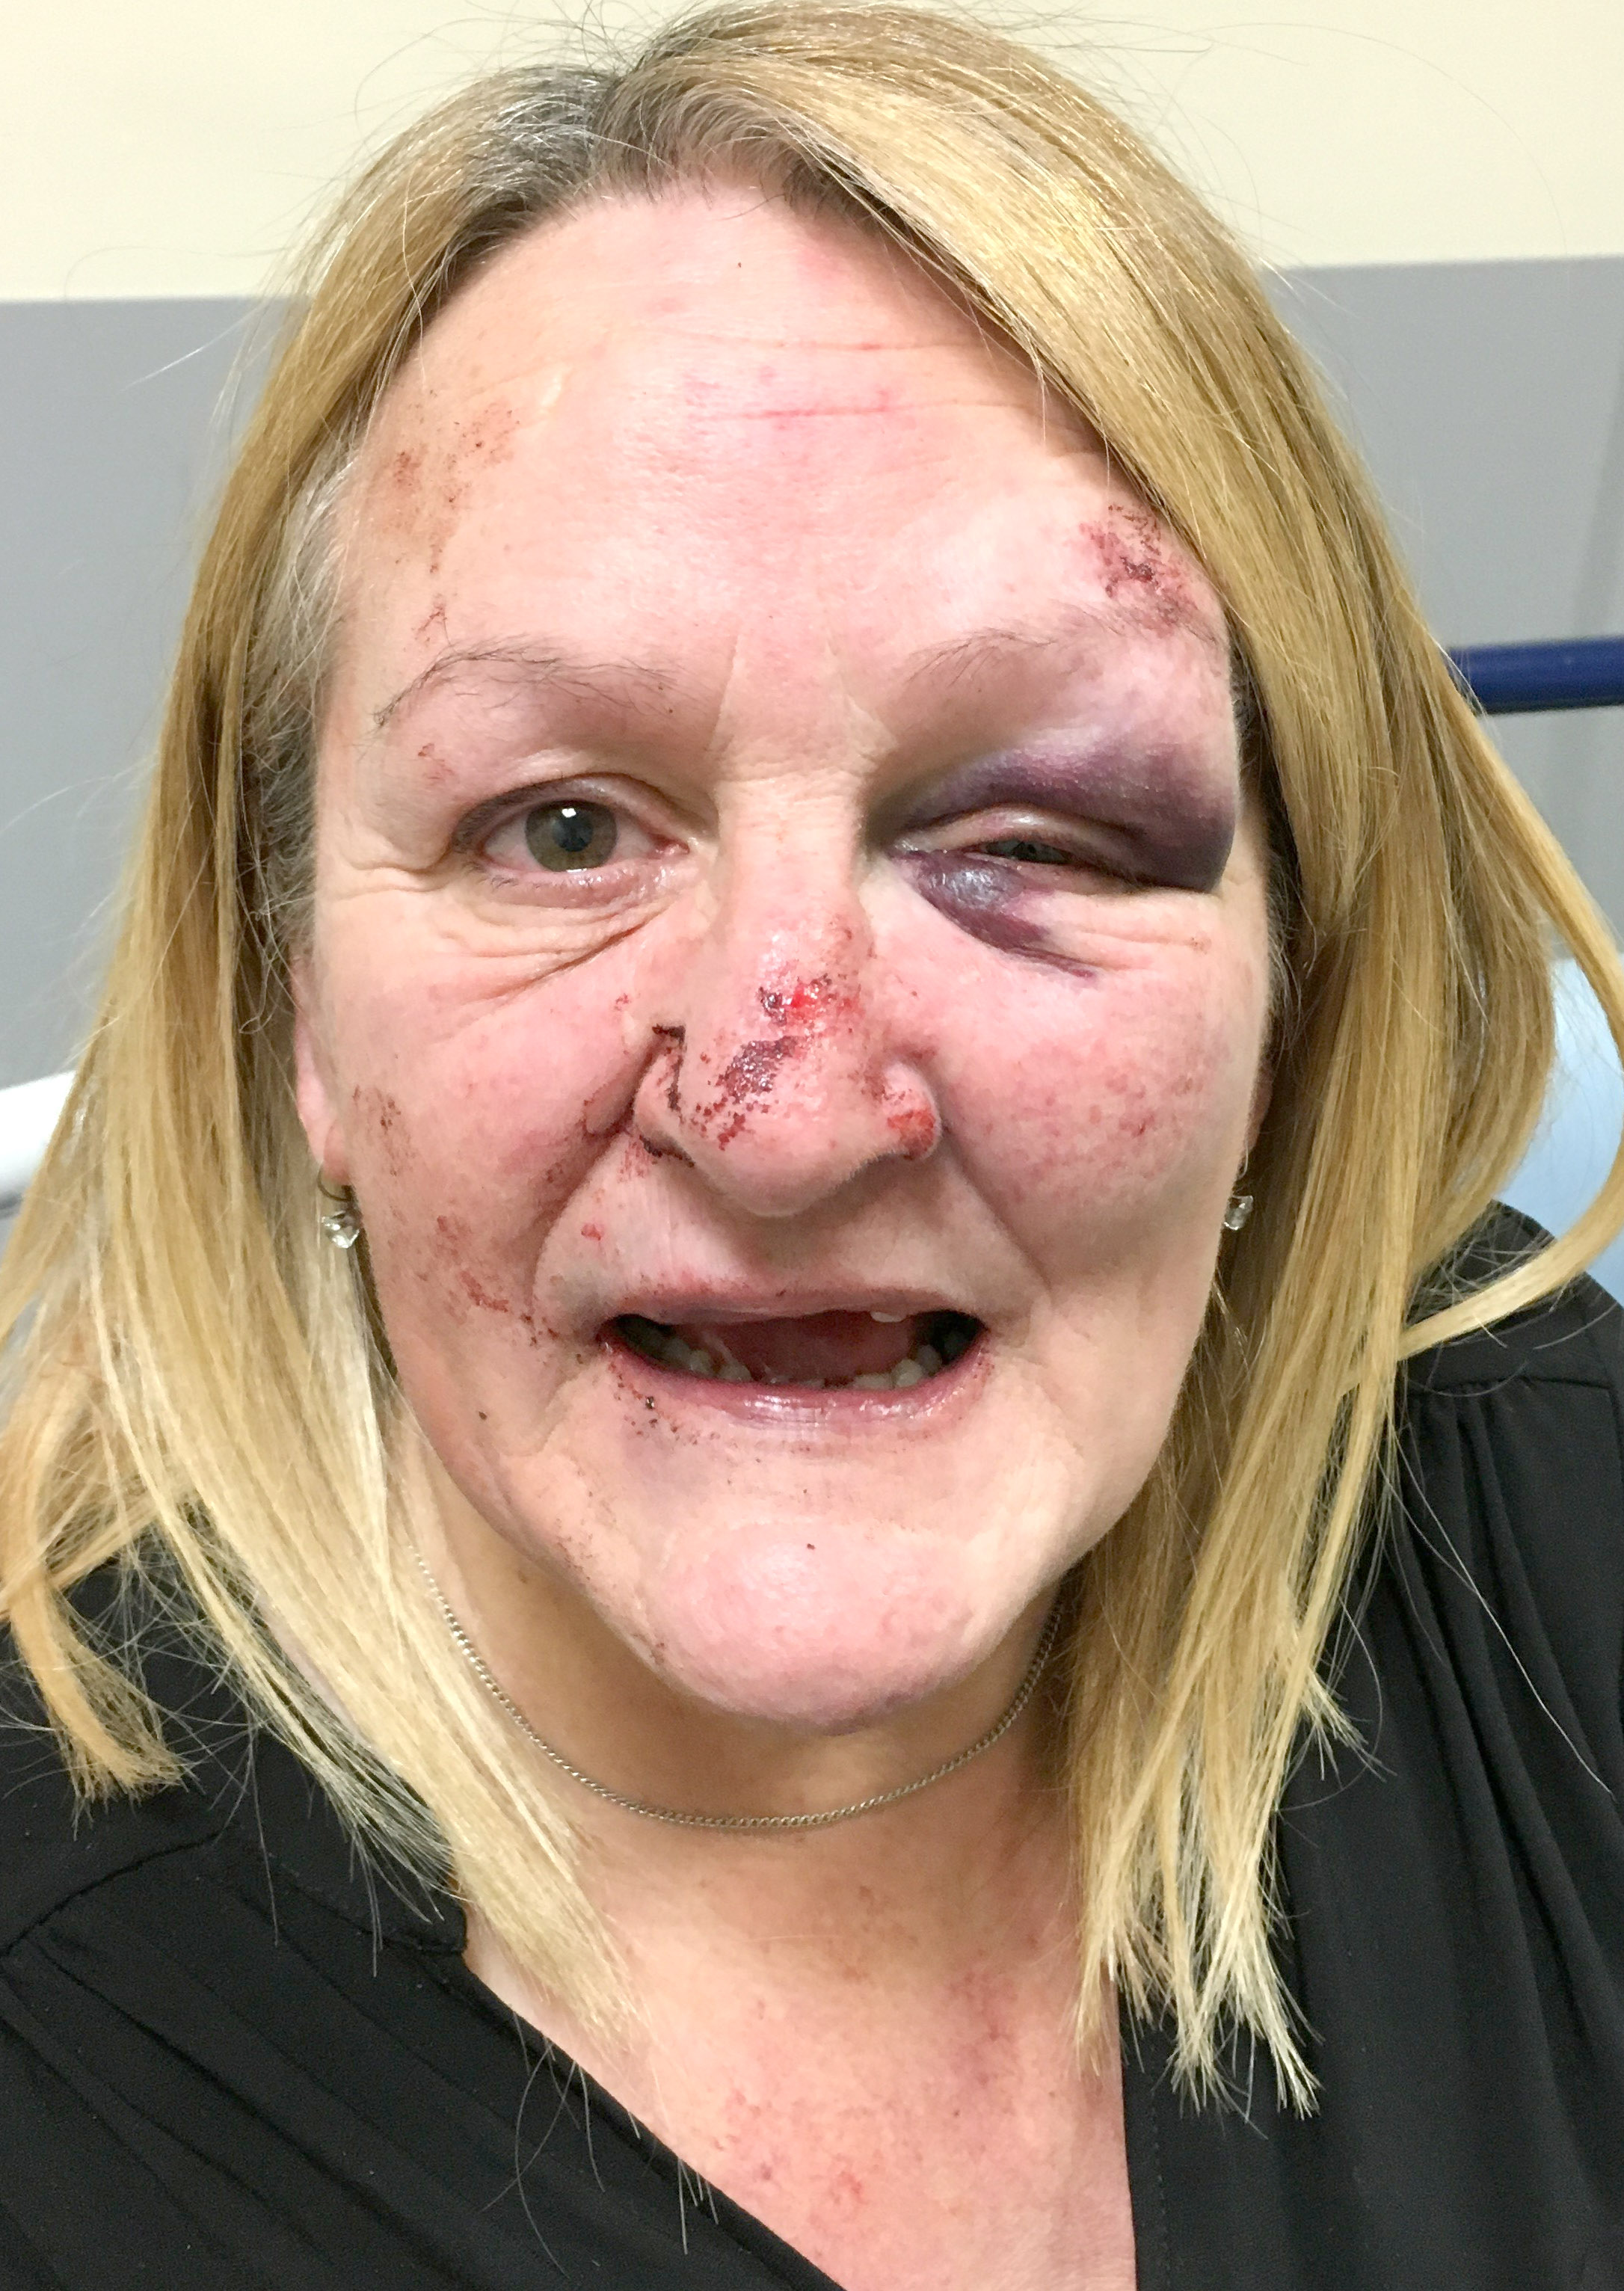 Unprovoked Attack on Two Women